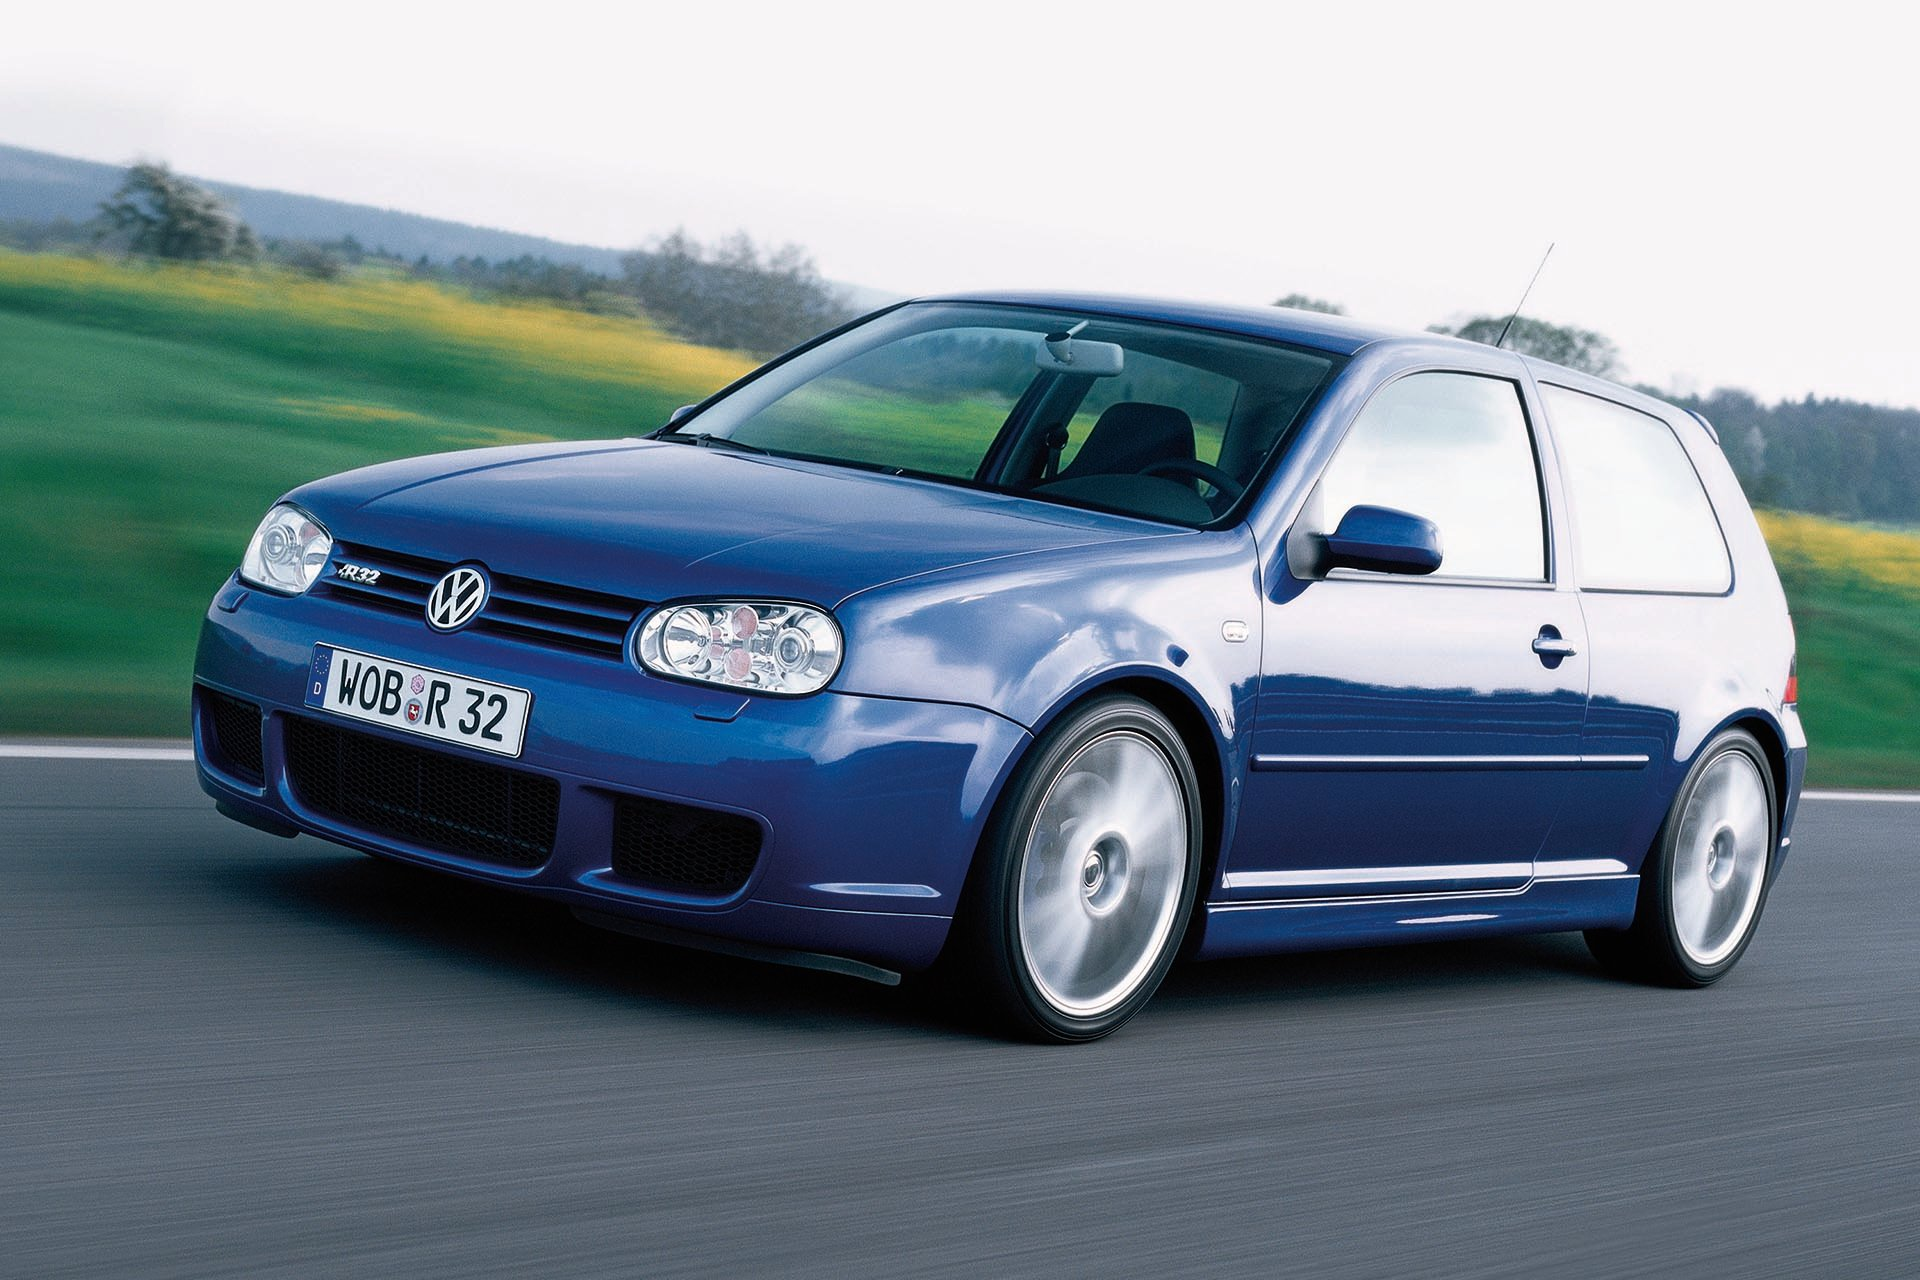 07_VW Mk4 Golf R32 4MOTION front